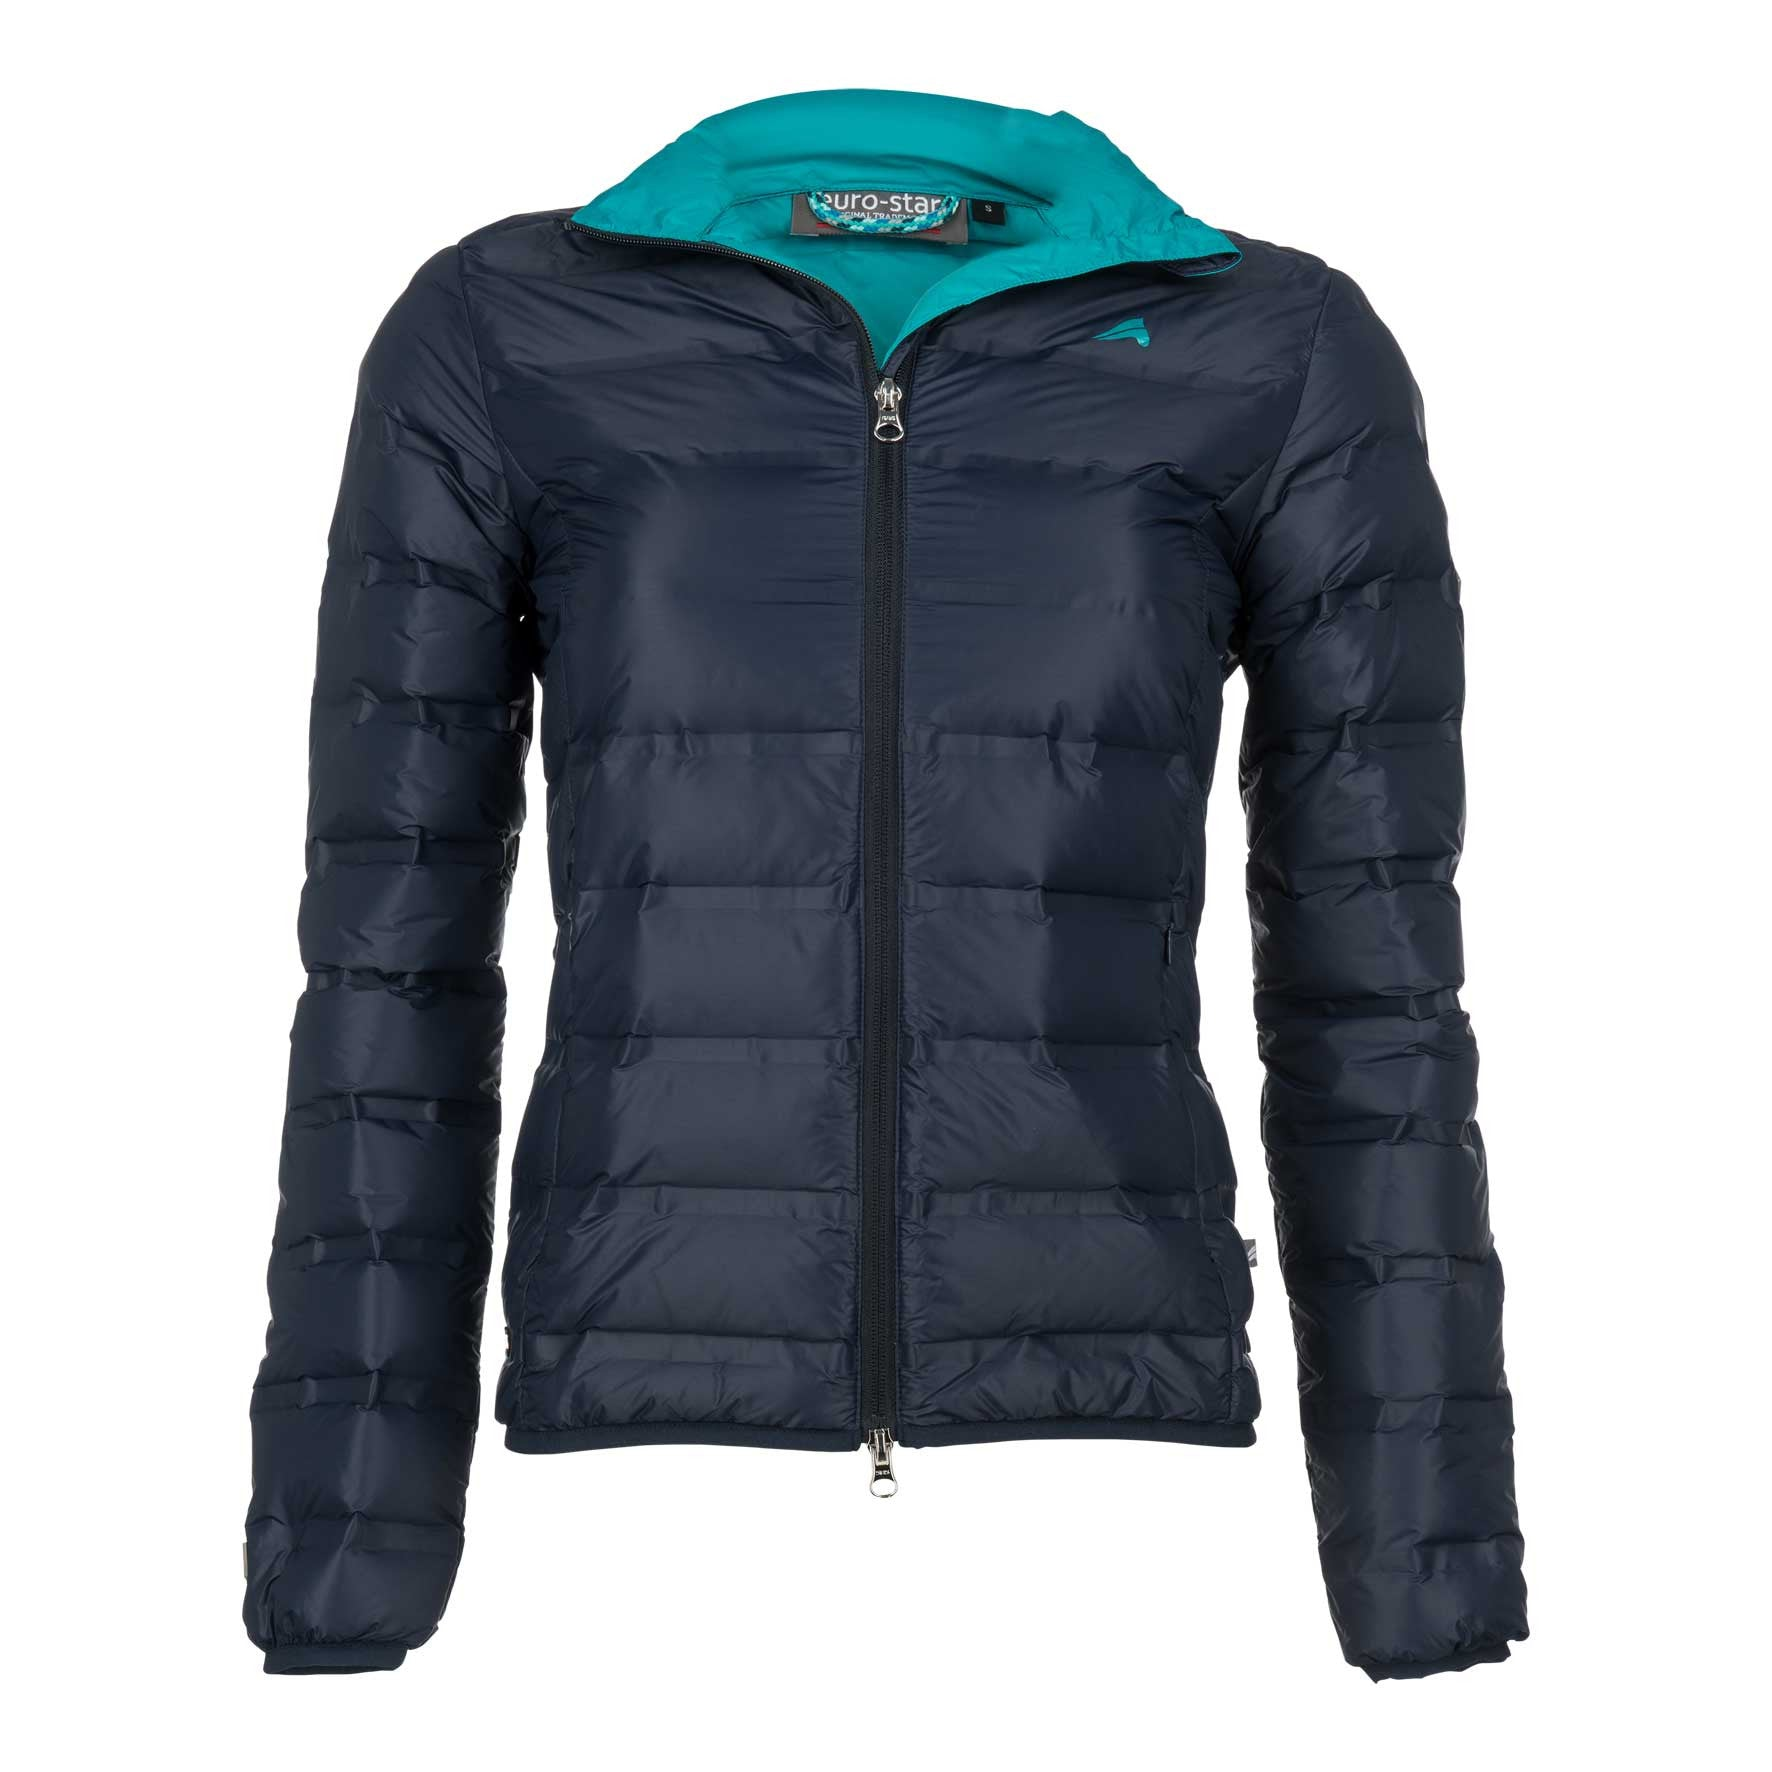 Euro-star Arona Ladies Jacket - Navy - Divine Equestrian